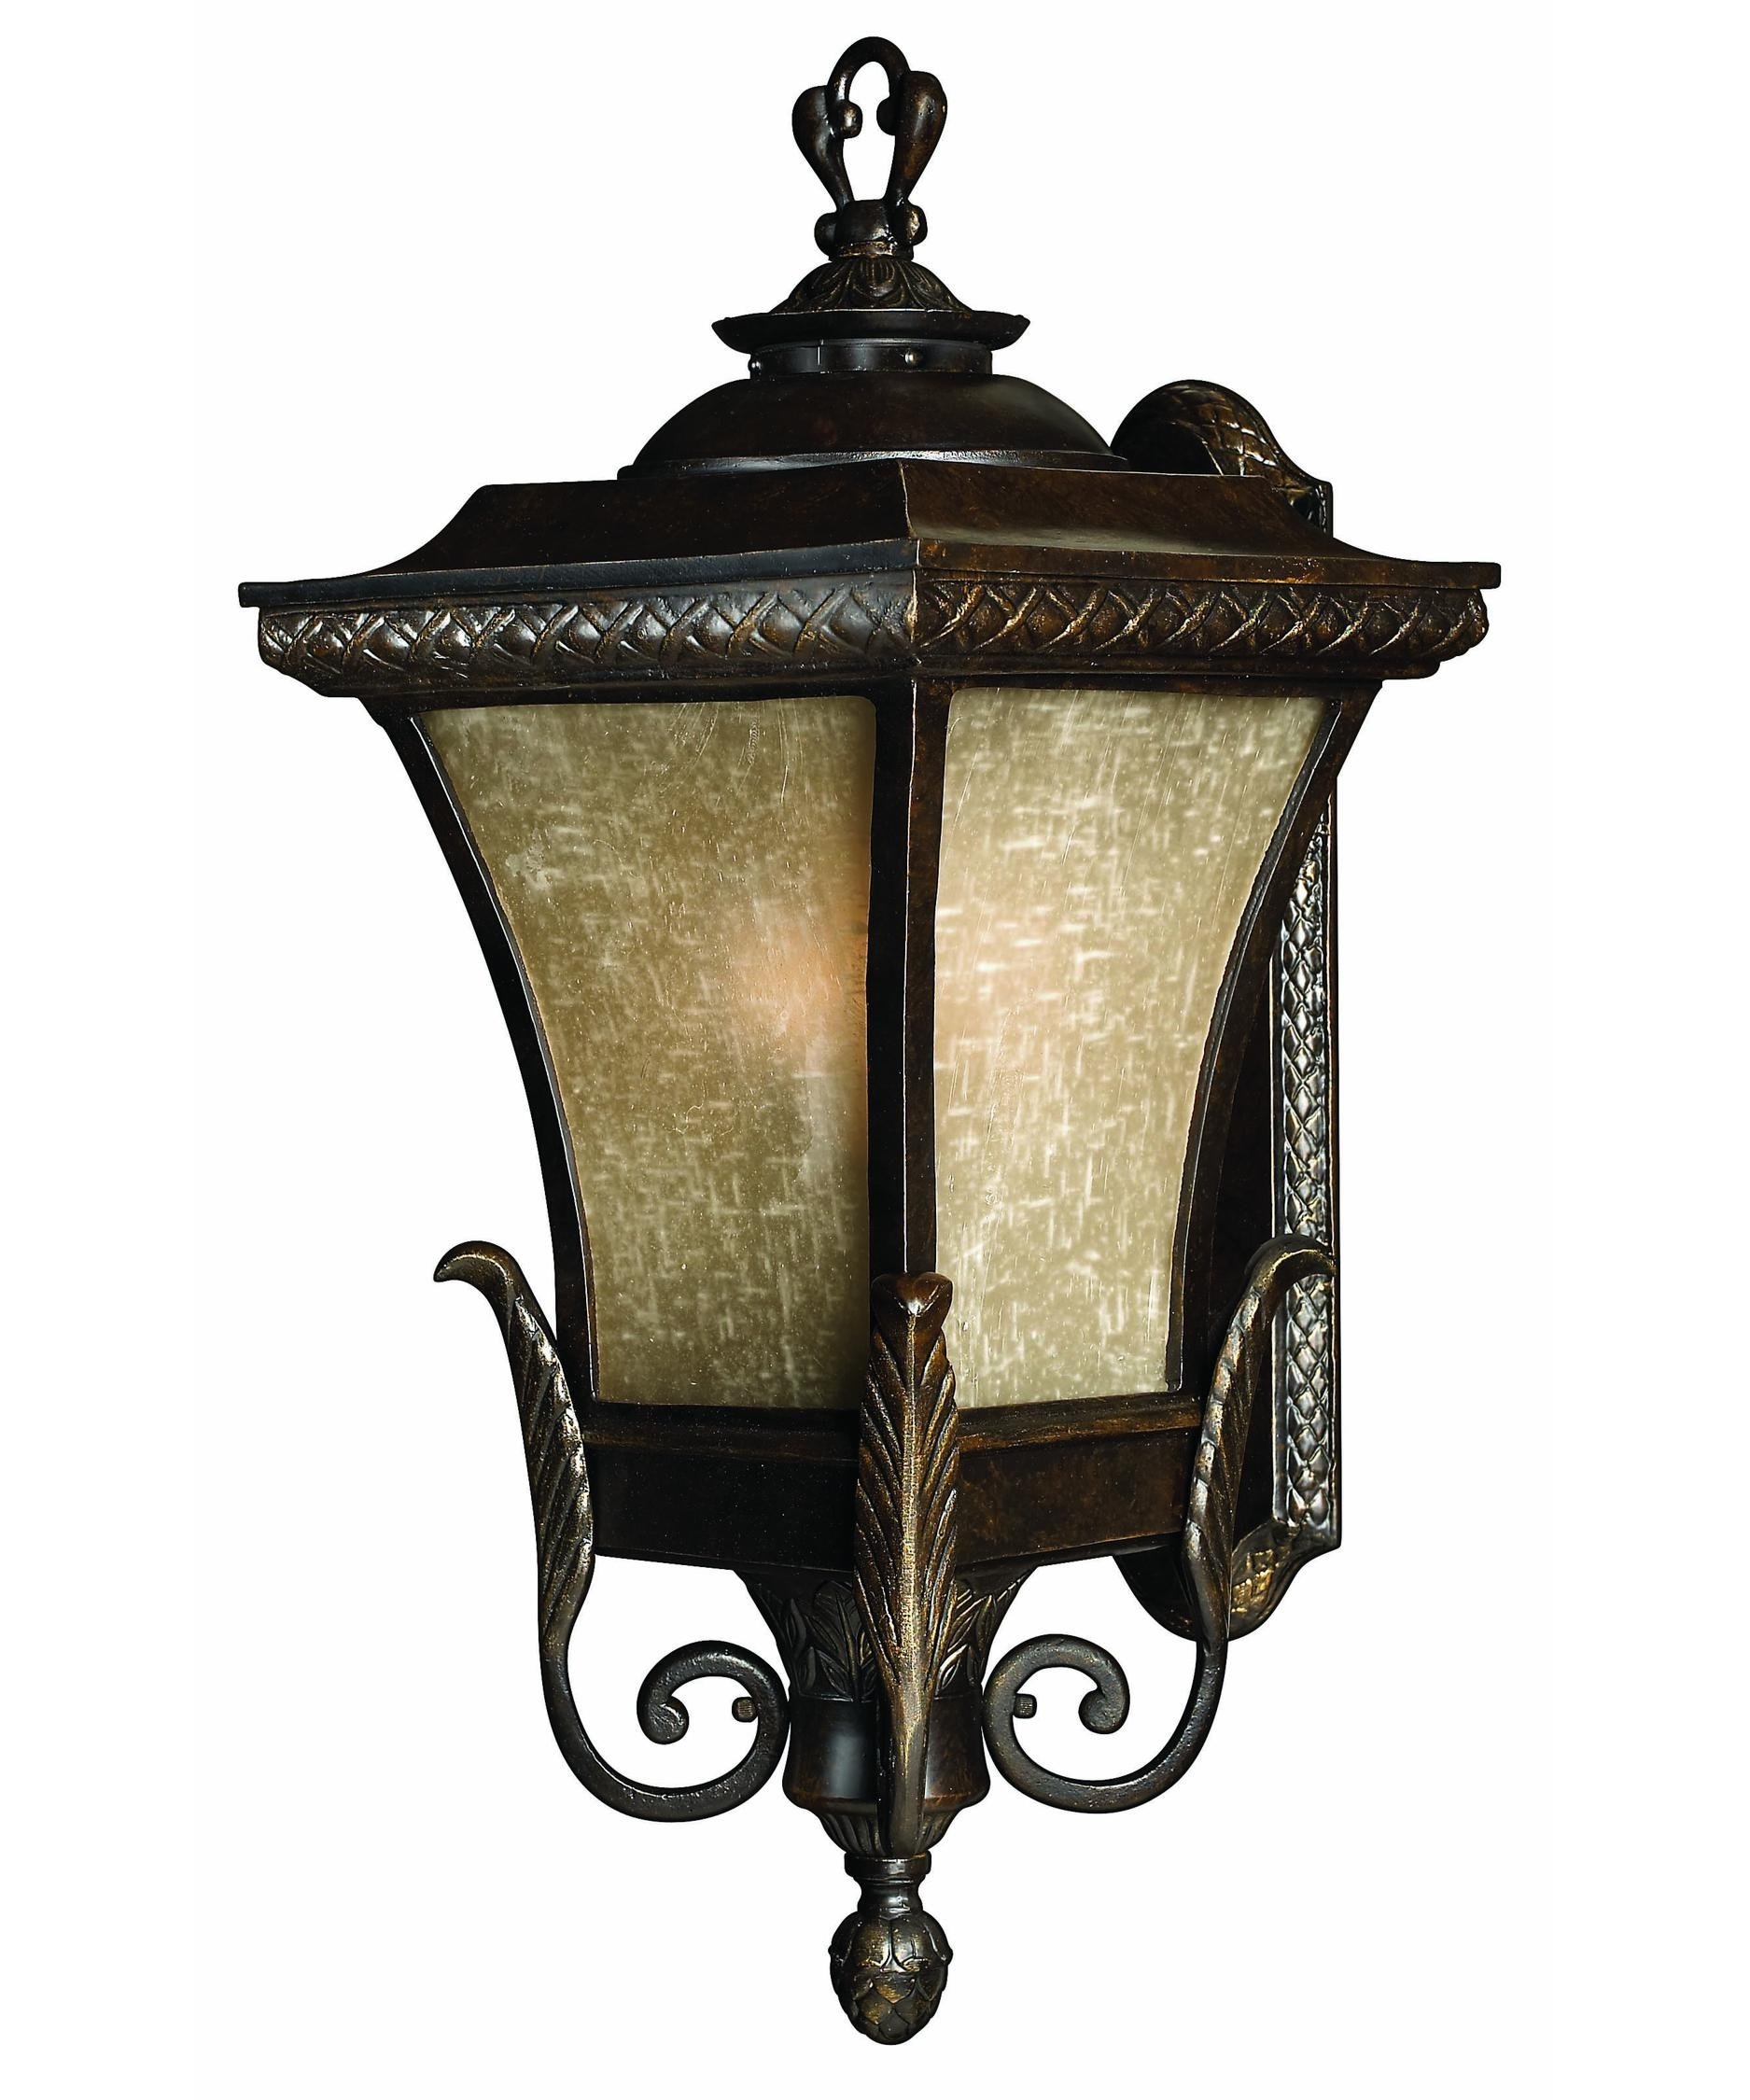 Hinkley Lighting 1935 Brynmar 12 Inch Wide 1 Light Outdoor Wall For Extra Large Wall Mount Porch Hinkley Lighting (#12 of 15)